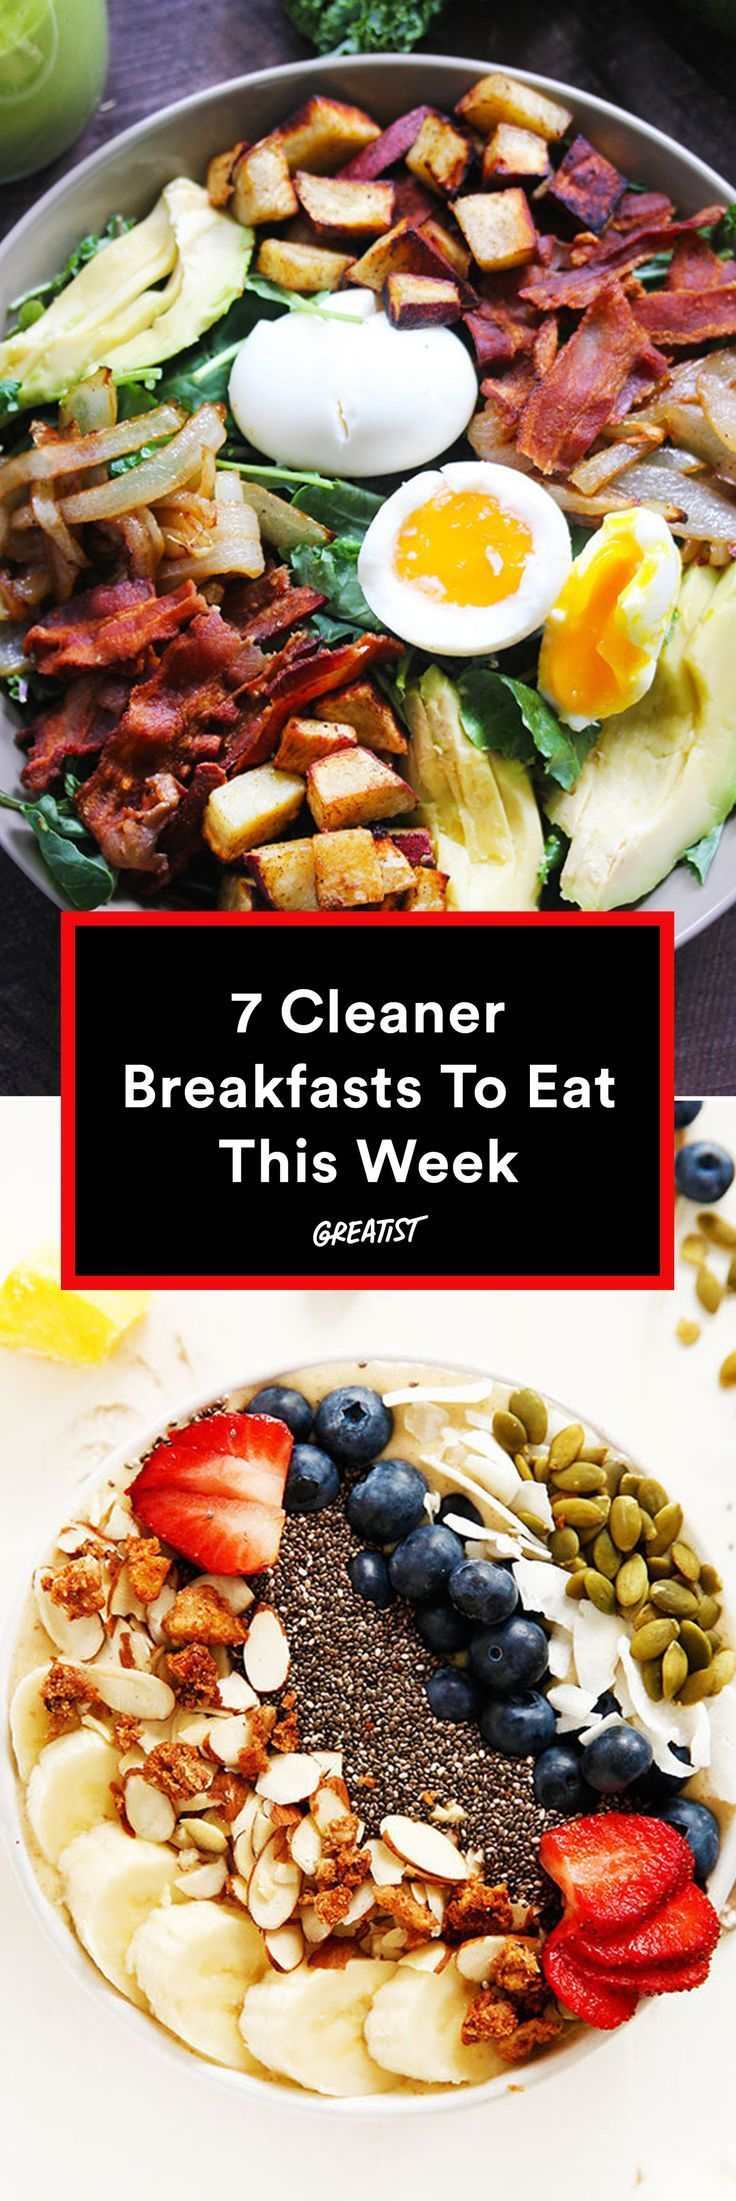 Easy Keto Supper Meals